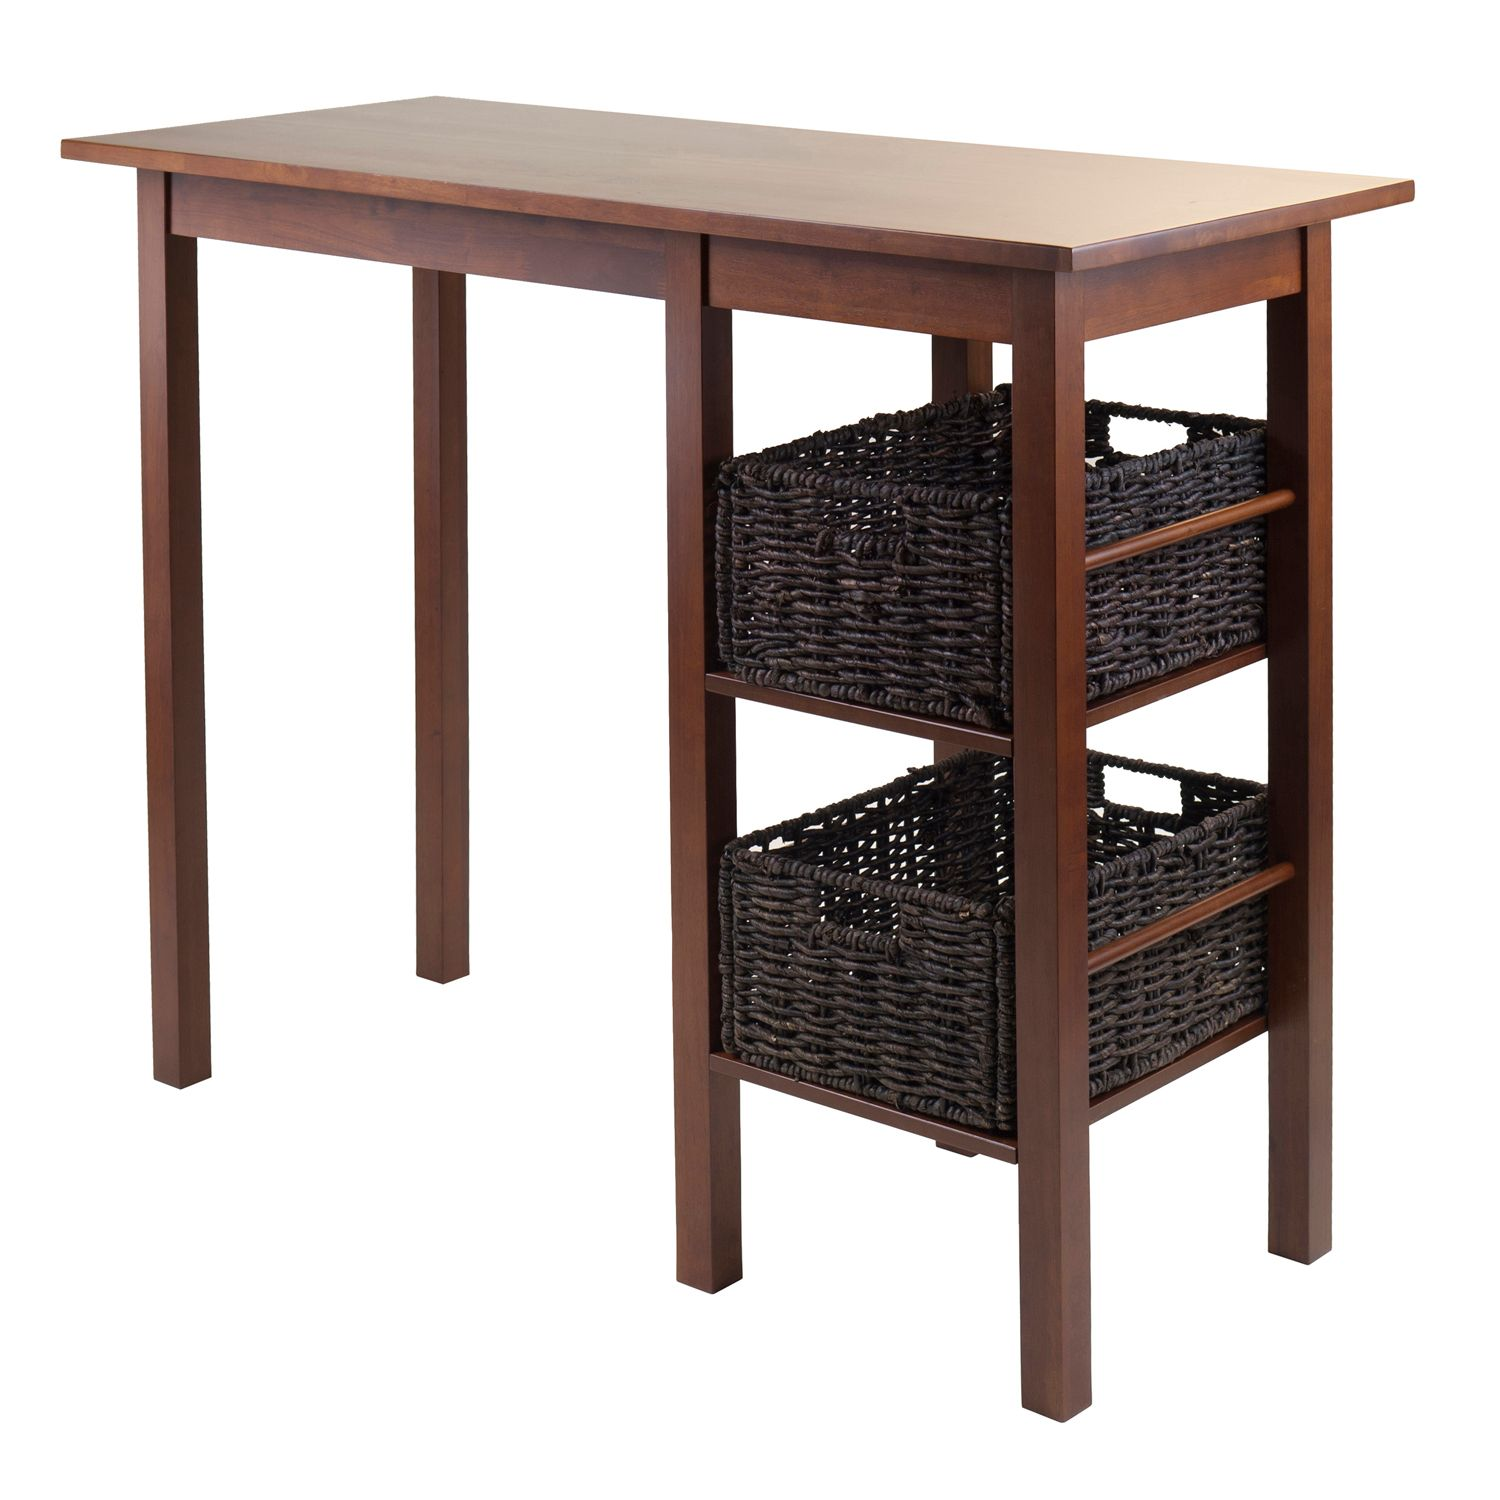 Winsome Egan 3 Piece Dining Table Set